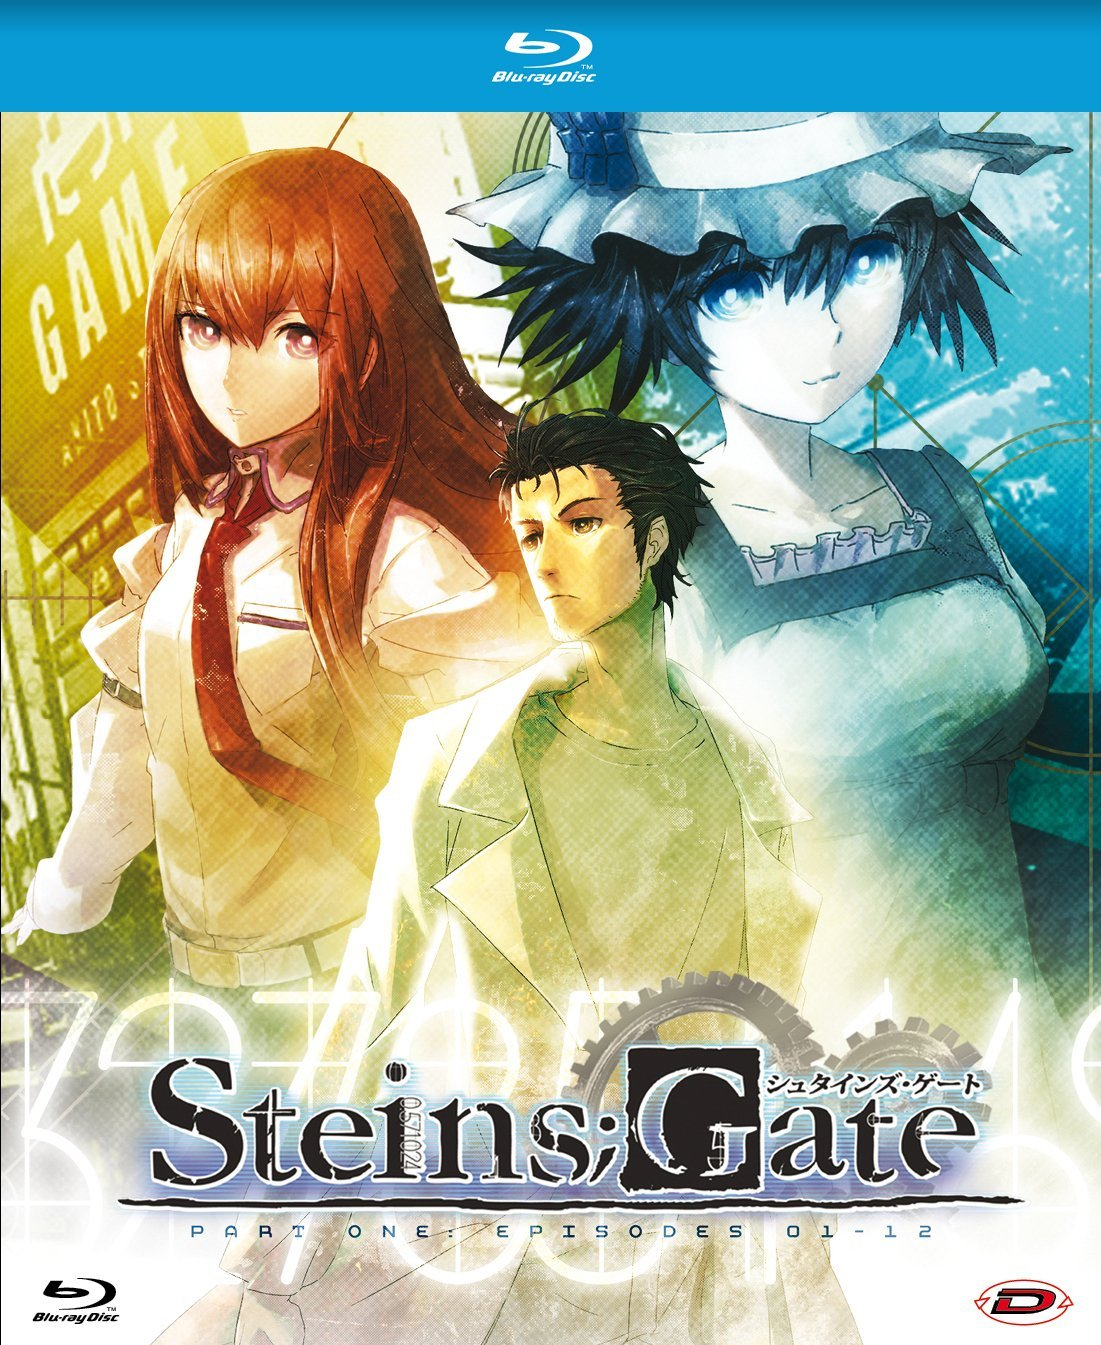 steins gate 1 blu-ray